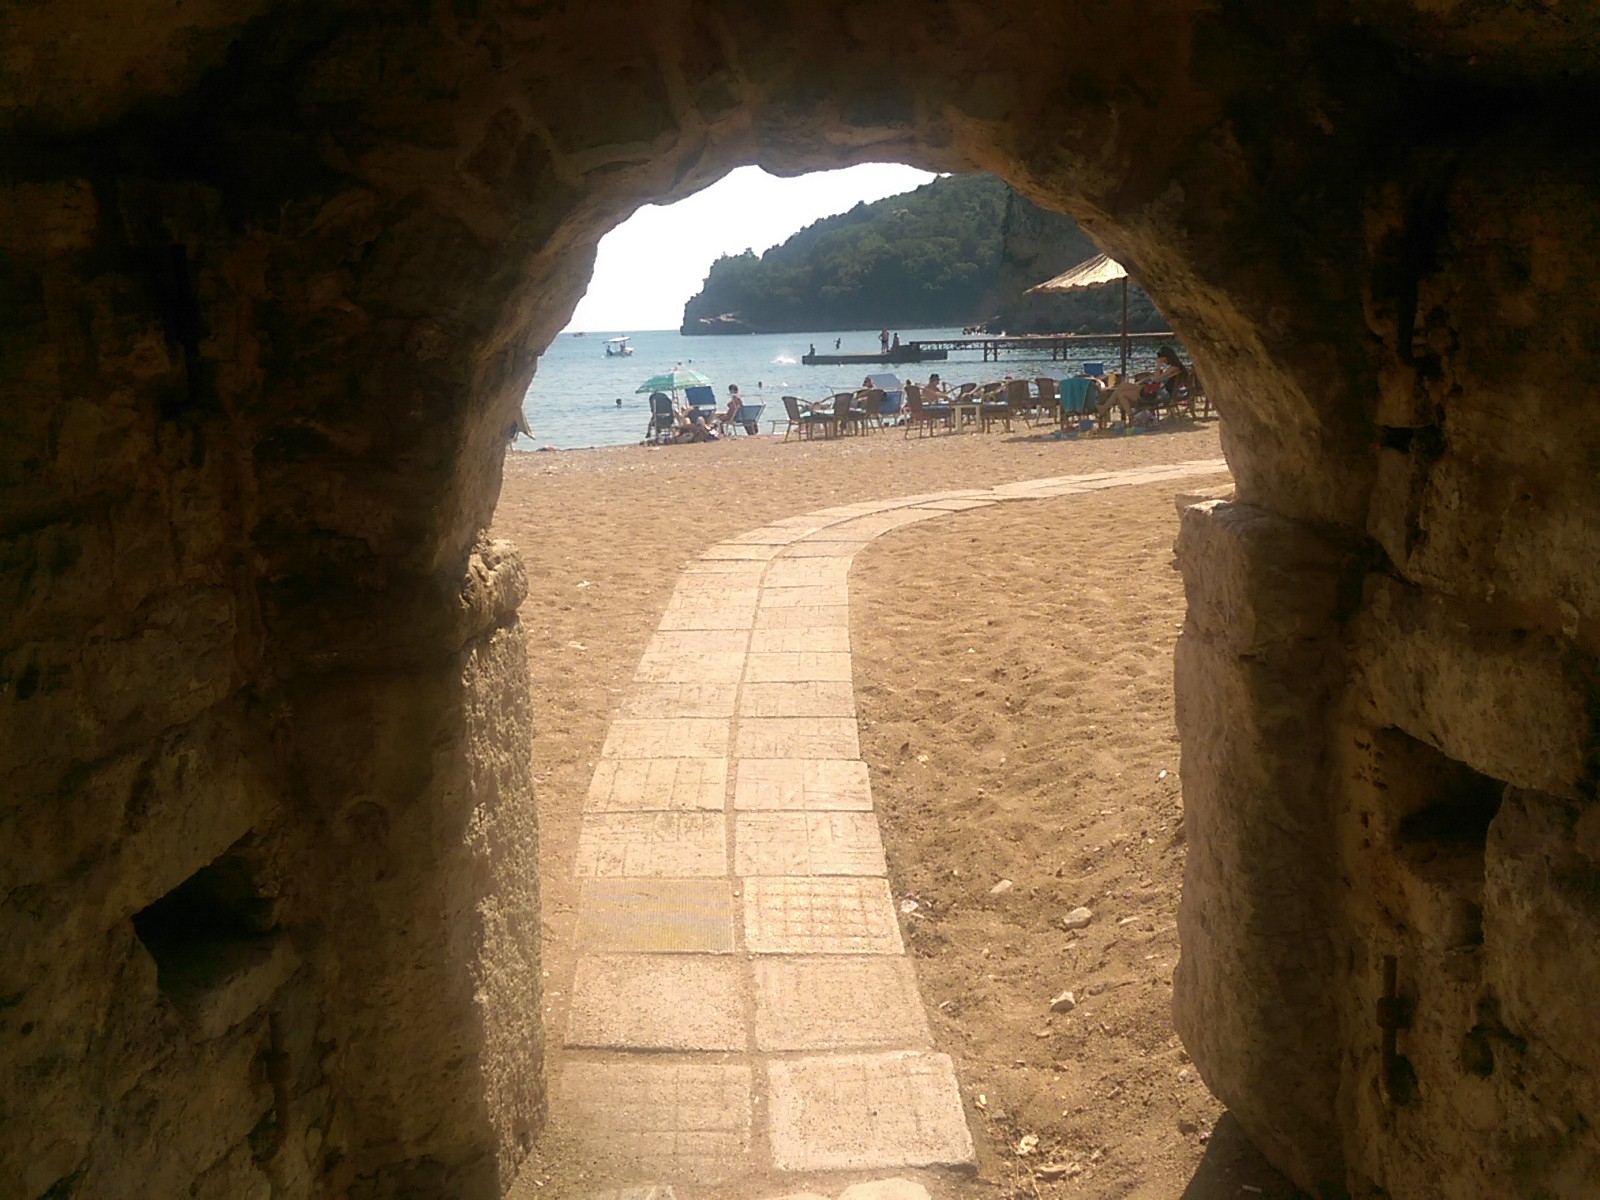 A stone archway opens directly to a beach with a tile path curving right through the sand, parallel with the sea